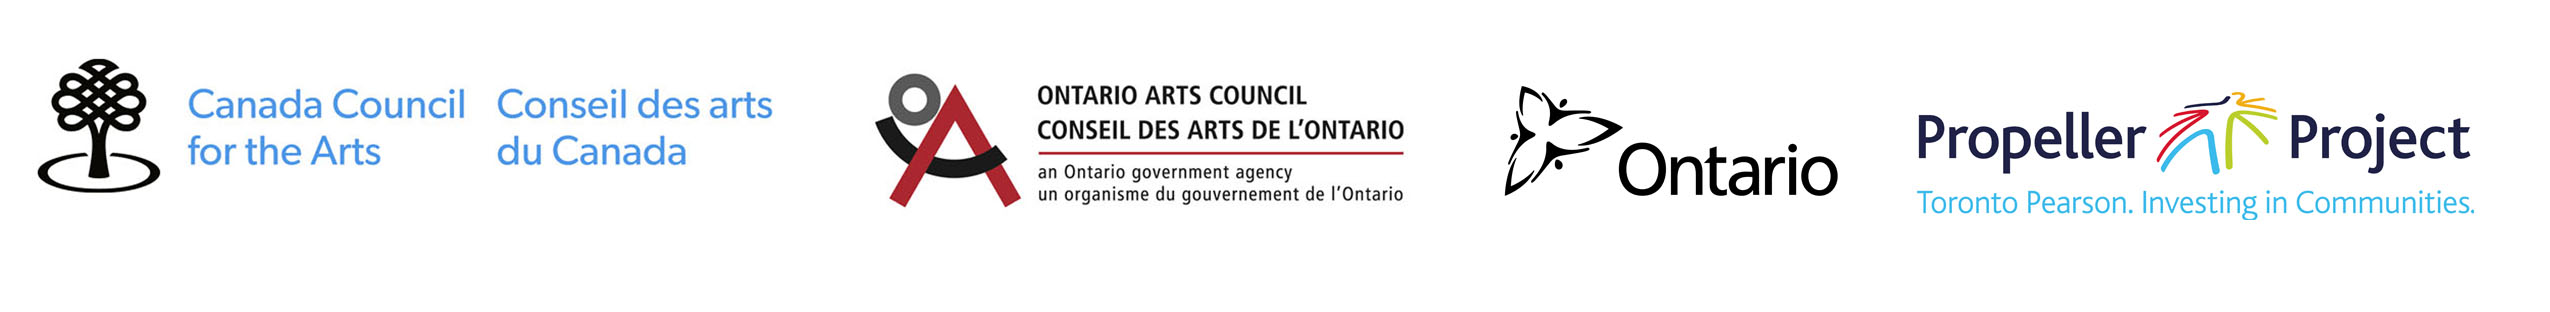 Cultural Pluralism in the Arts Movement Ontario (CPAMO) is supported by the Canada Council for the Arts, Ontario Arts Council, Toronto Pearson International Airport's Propeller Project and the Ontario Ministry of Citizenship and Immigration.